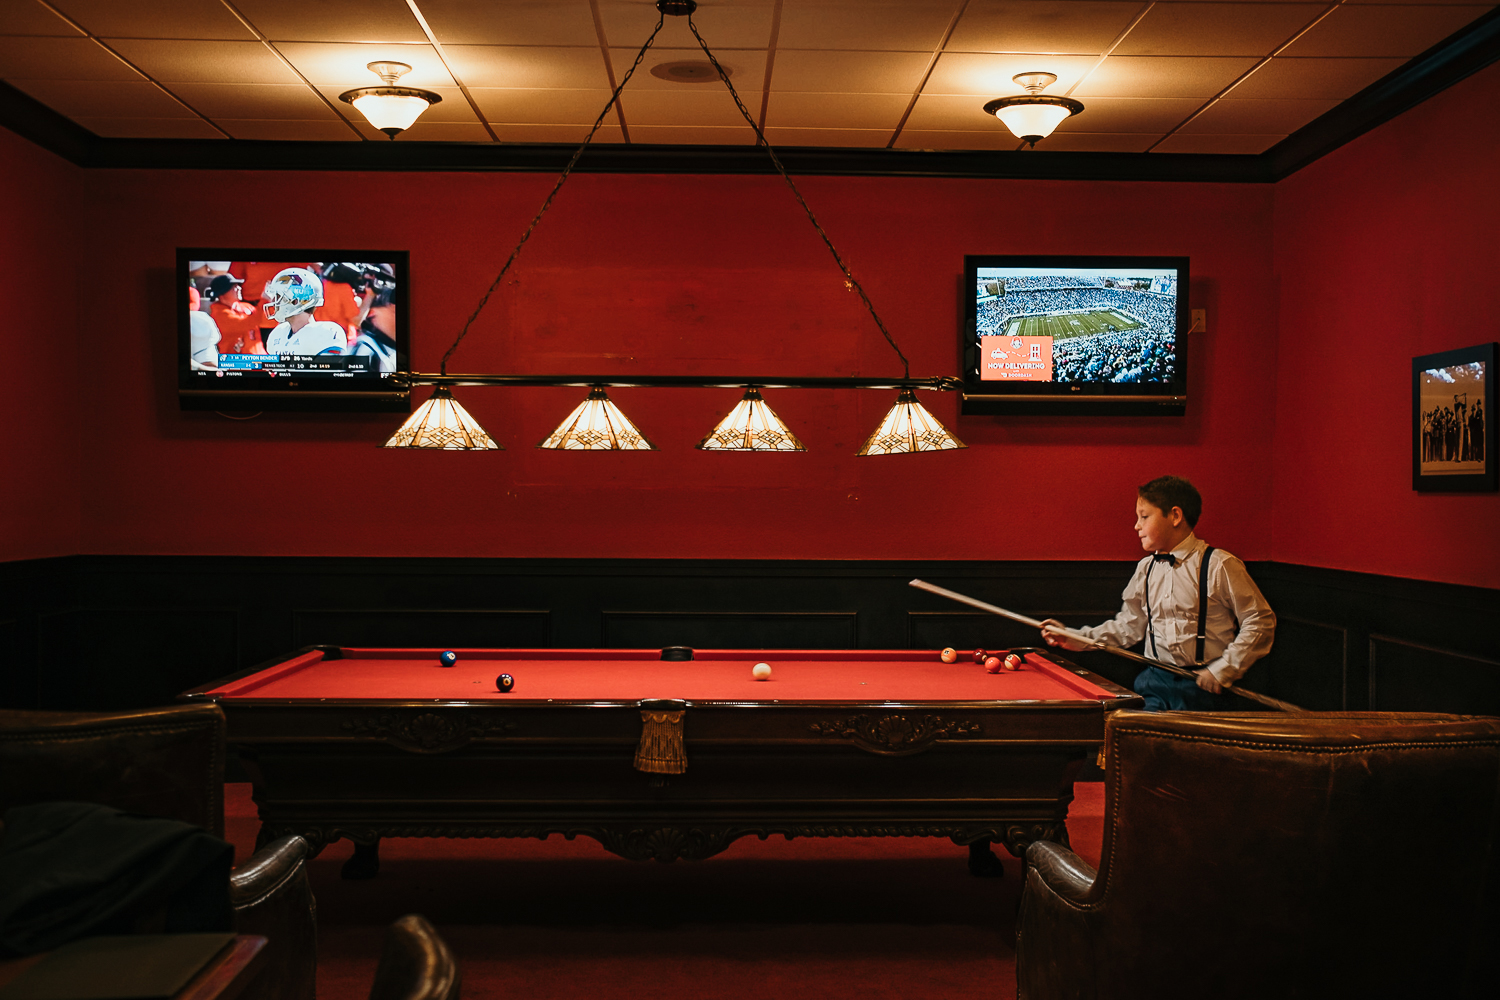 wide side shot of kid playing pool dressed formally with a red pool table